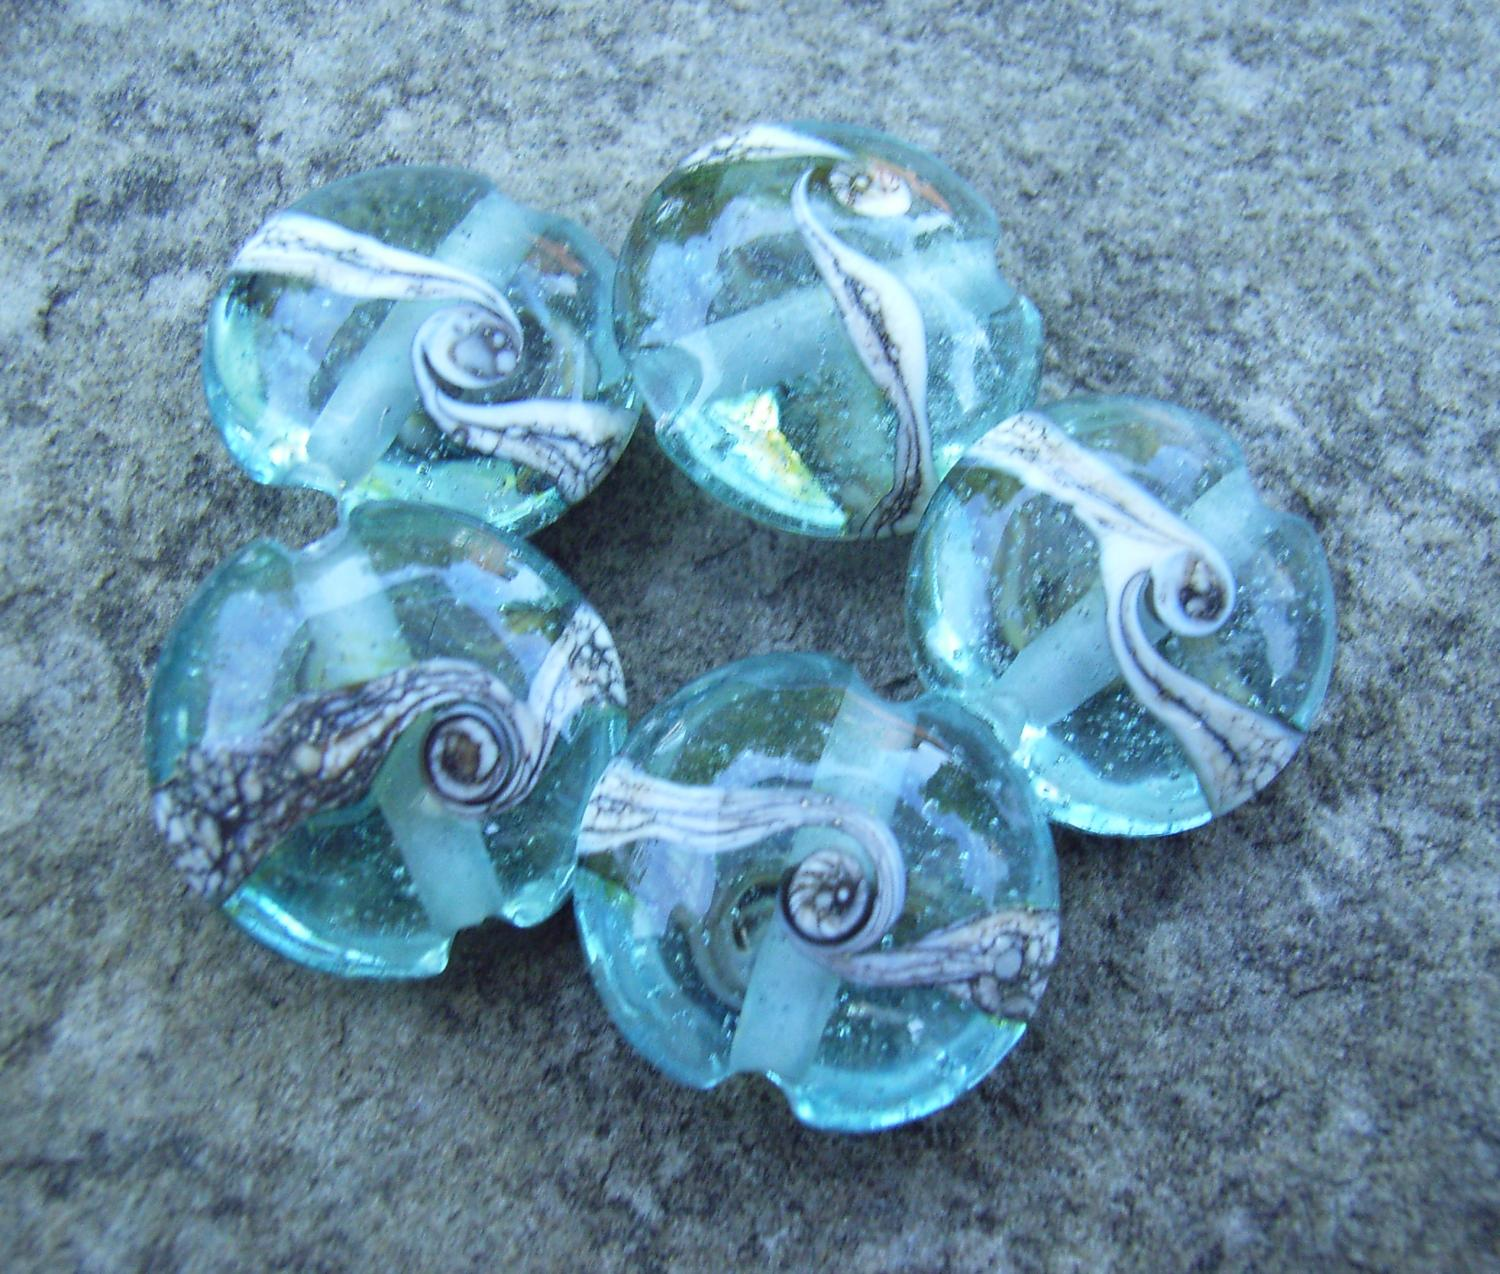 Silvered Ivory Swirl 18mm Aqua Lentil Handmade Artisan Glass Lampwork Beads - By the Bead, (Made to Order) a